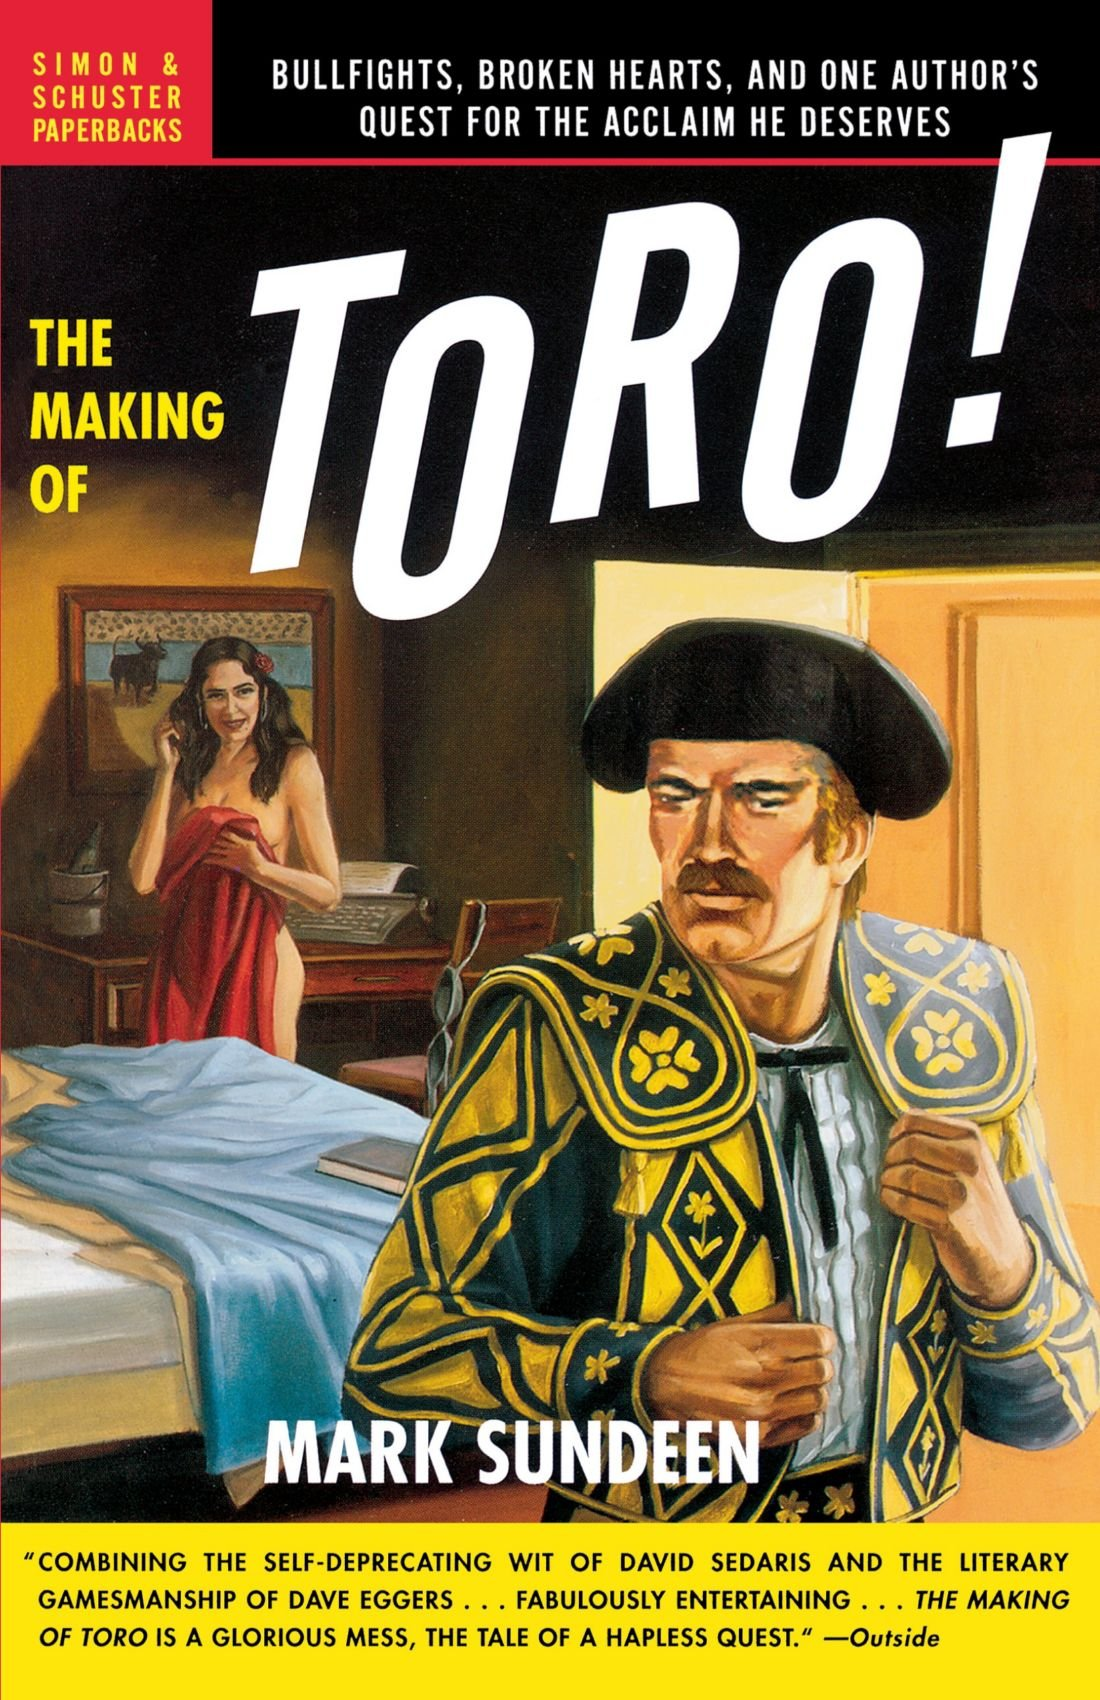 The Making of Toro: Bullfights, Broken Hearts, and One Author's Quest for the Acclaim He Deserves pdf